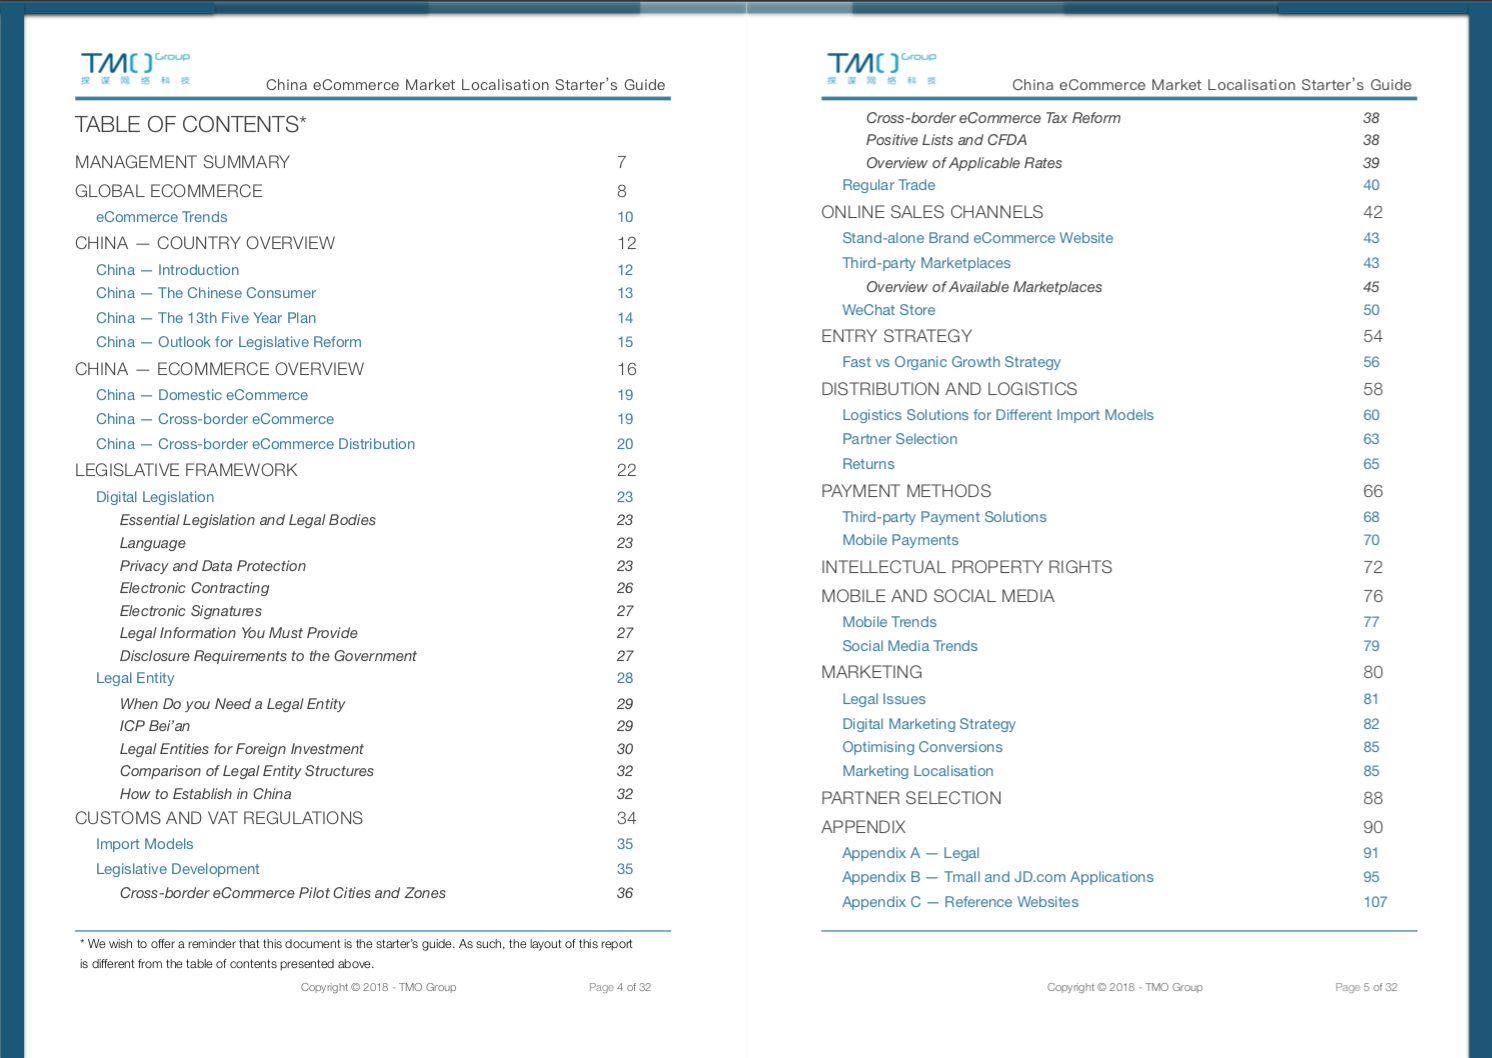 China eCommerce Market Localisation Starter's Guide - Table of Contents